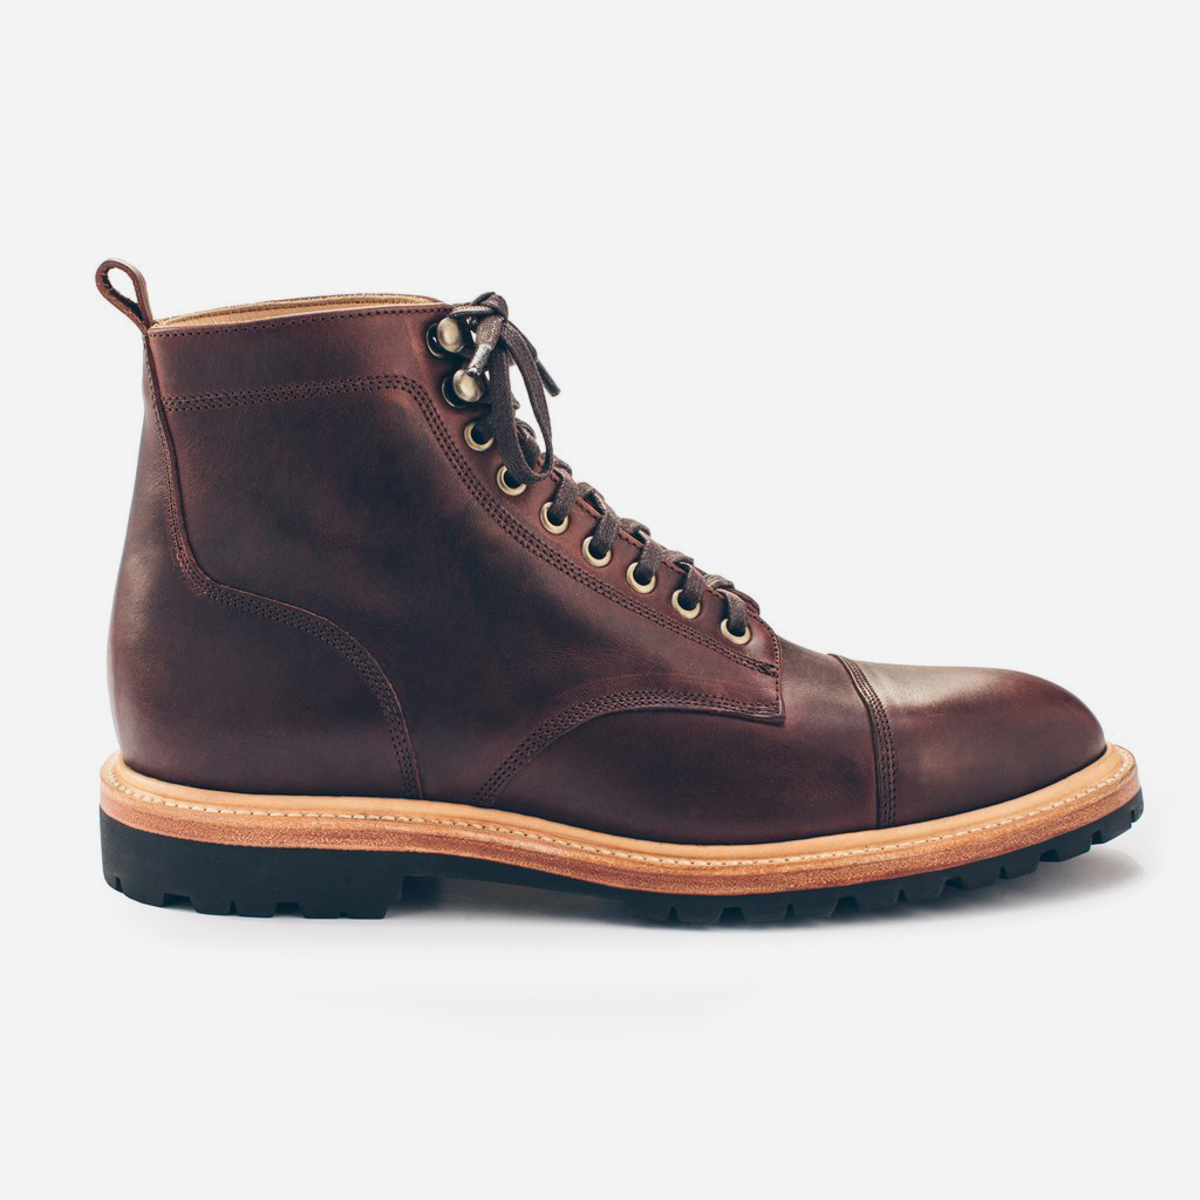 3a12fc288a6 These Full-Grain Steerhide Moto Boots are Made for Walking, Riding ...